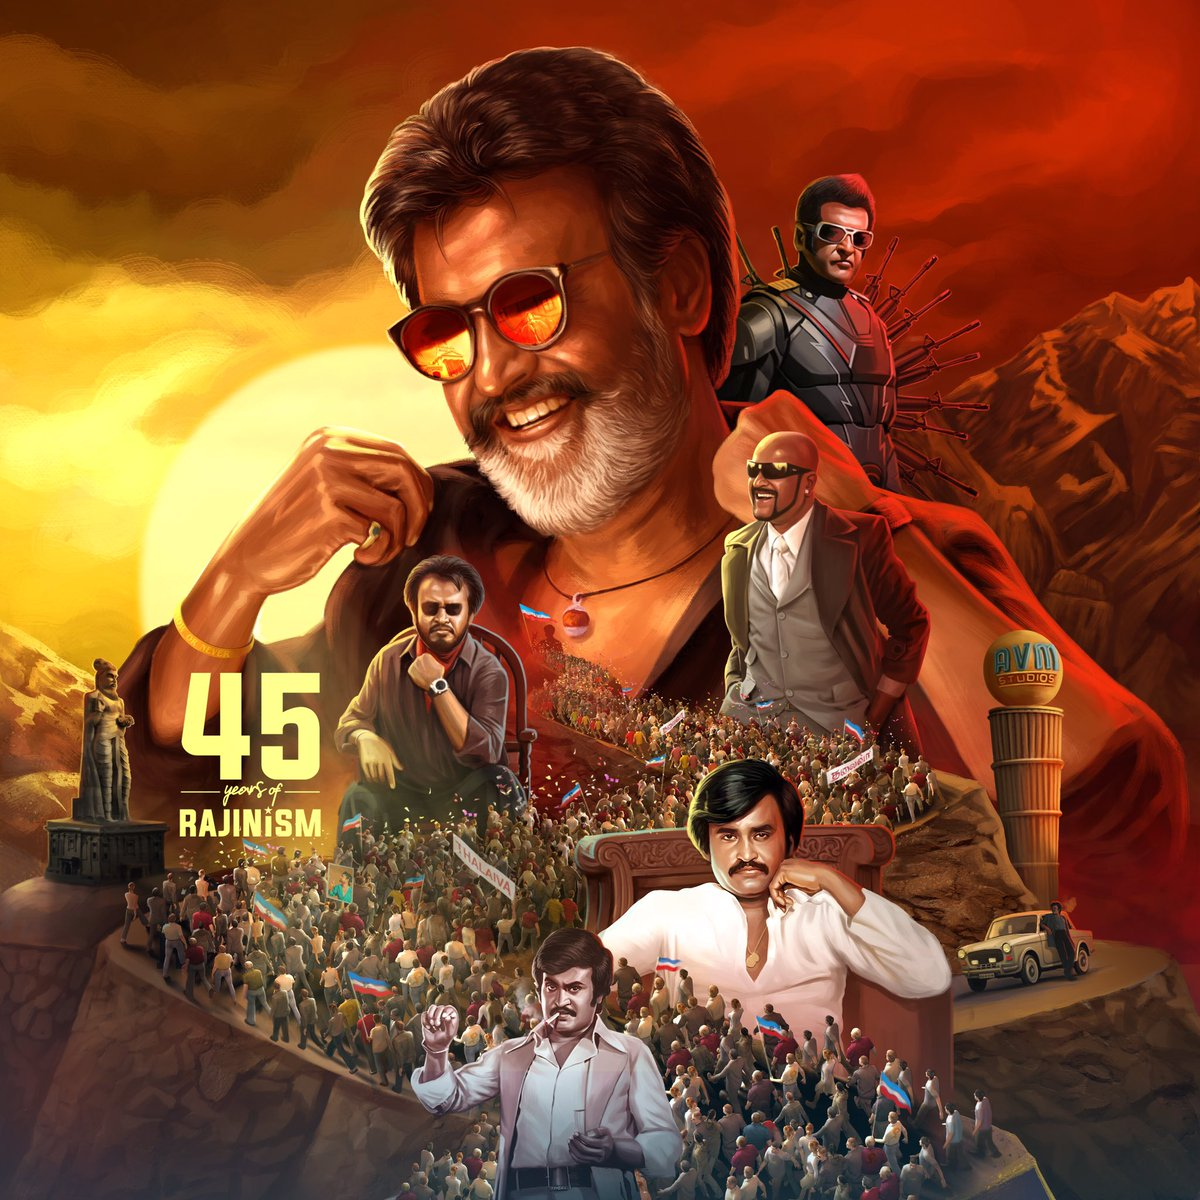 Happy to release our Pride of Indian cinema,Super star @rajinikanth sir's  #45YearsOfRajinismCDP 🙏👍😊